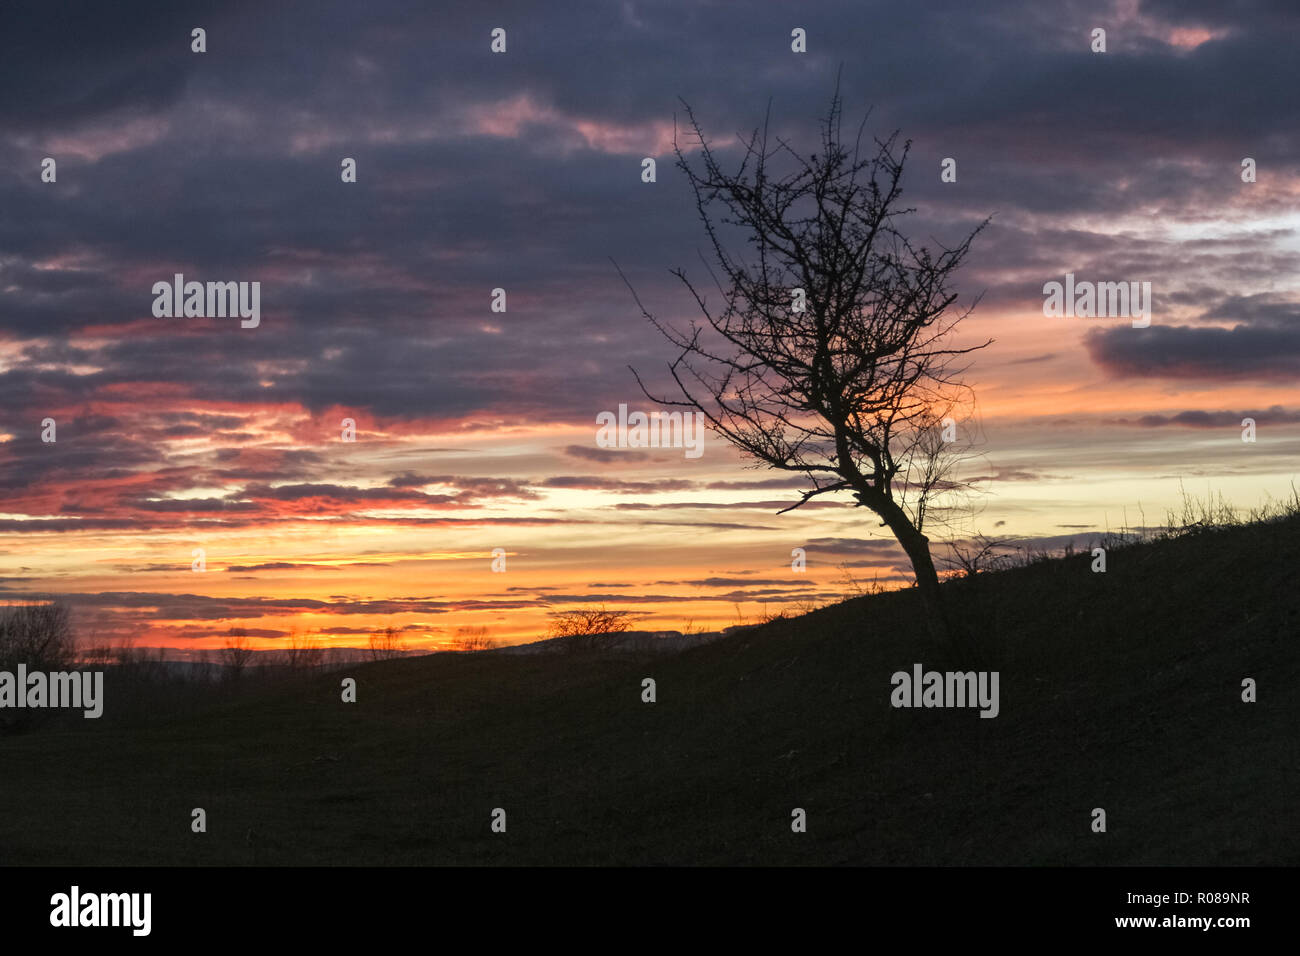 Silhouette of a lone tree against a colorful sky at sunset - Stock Image